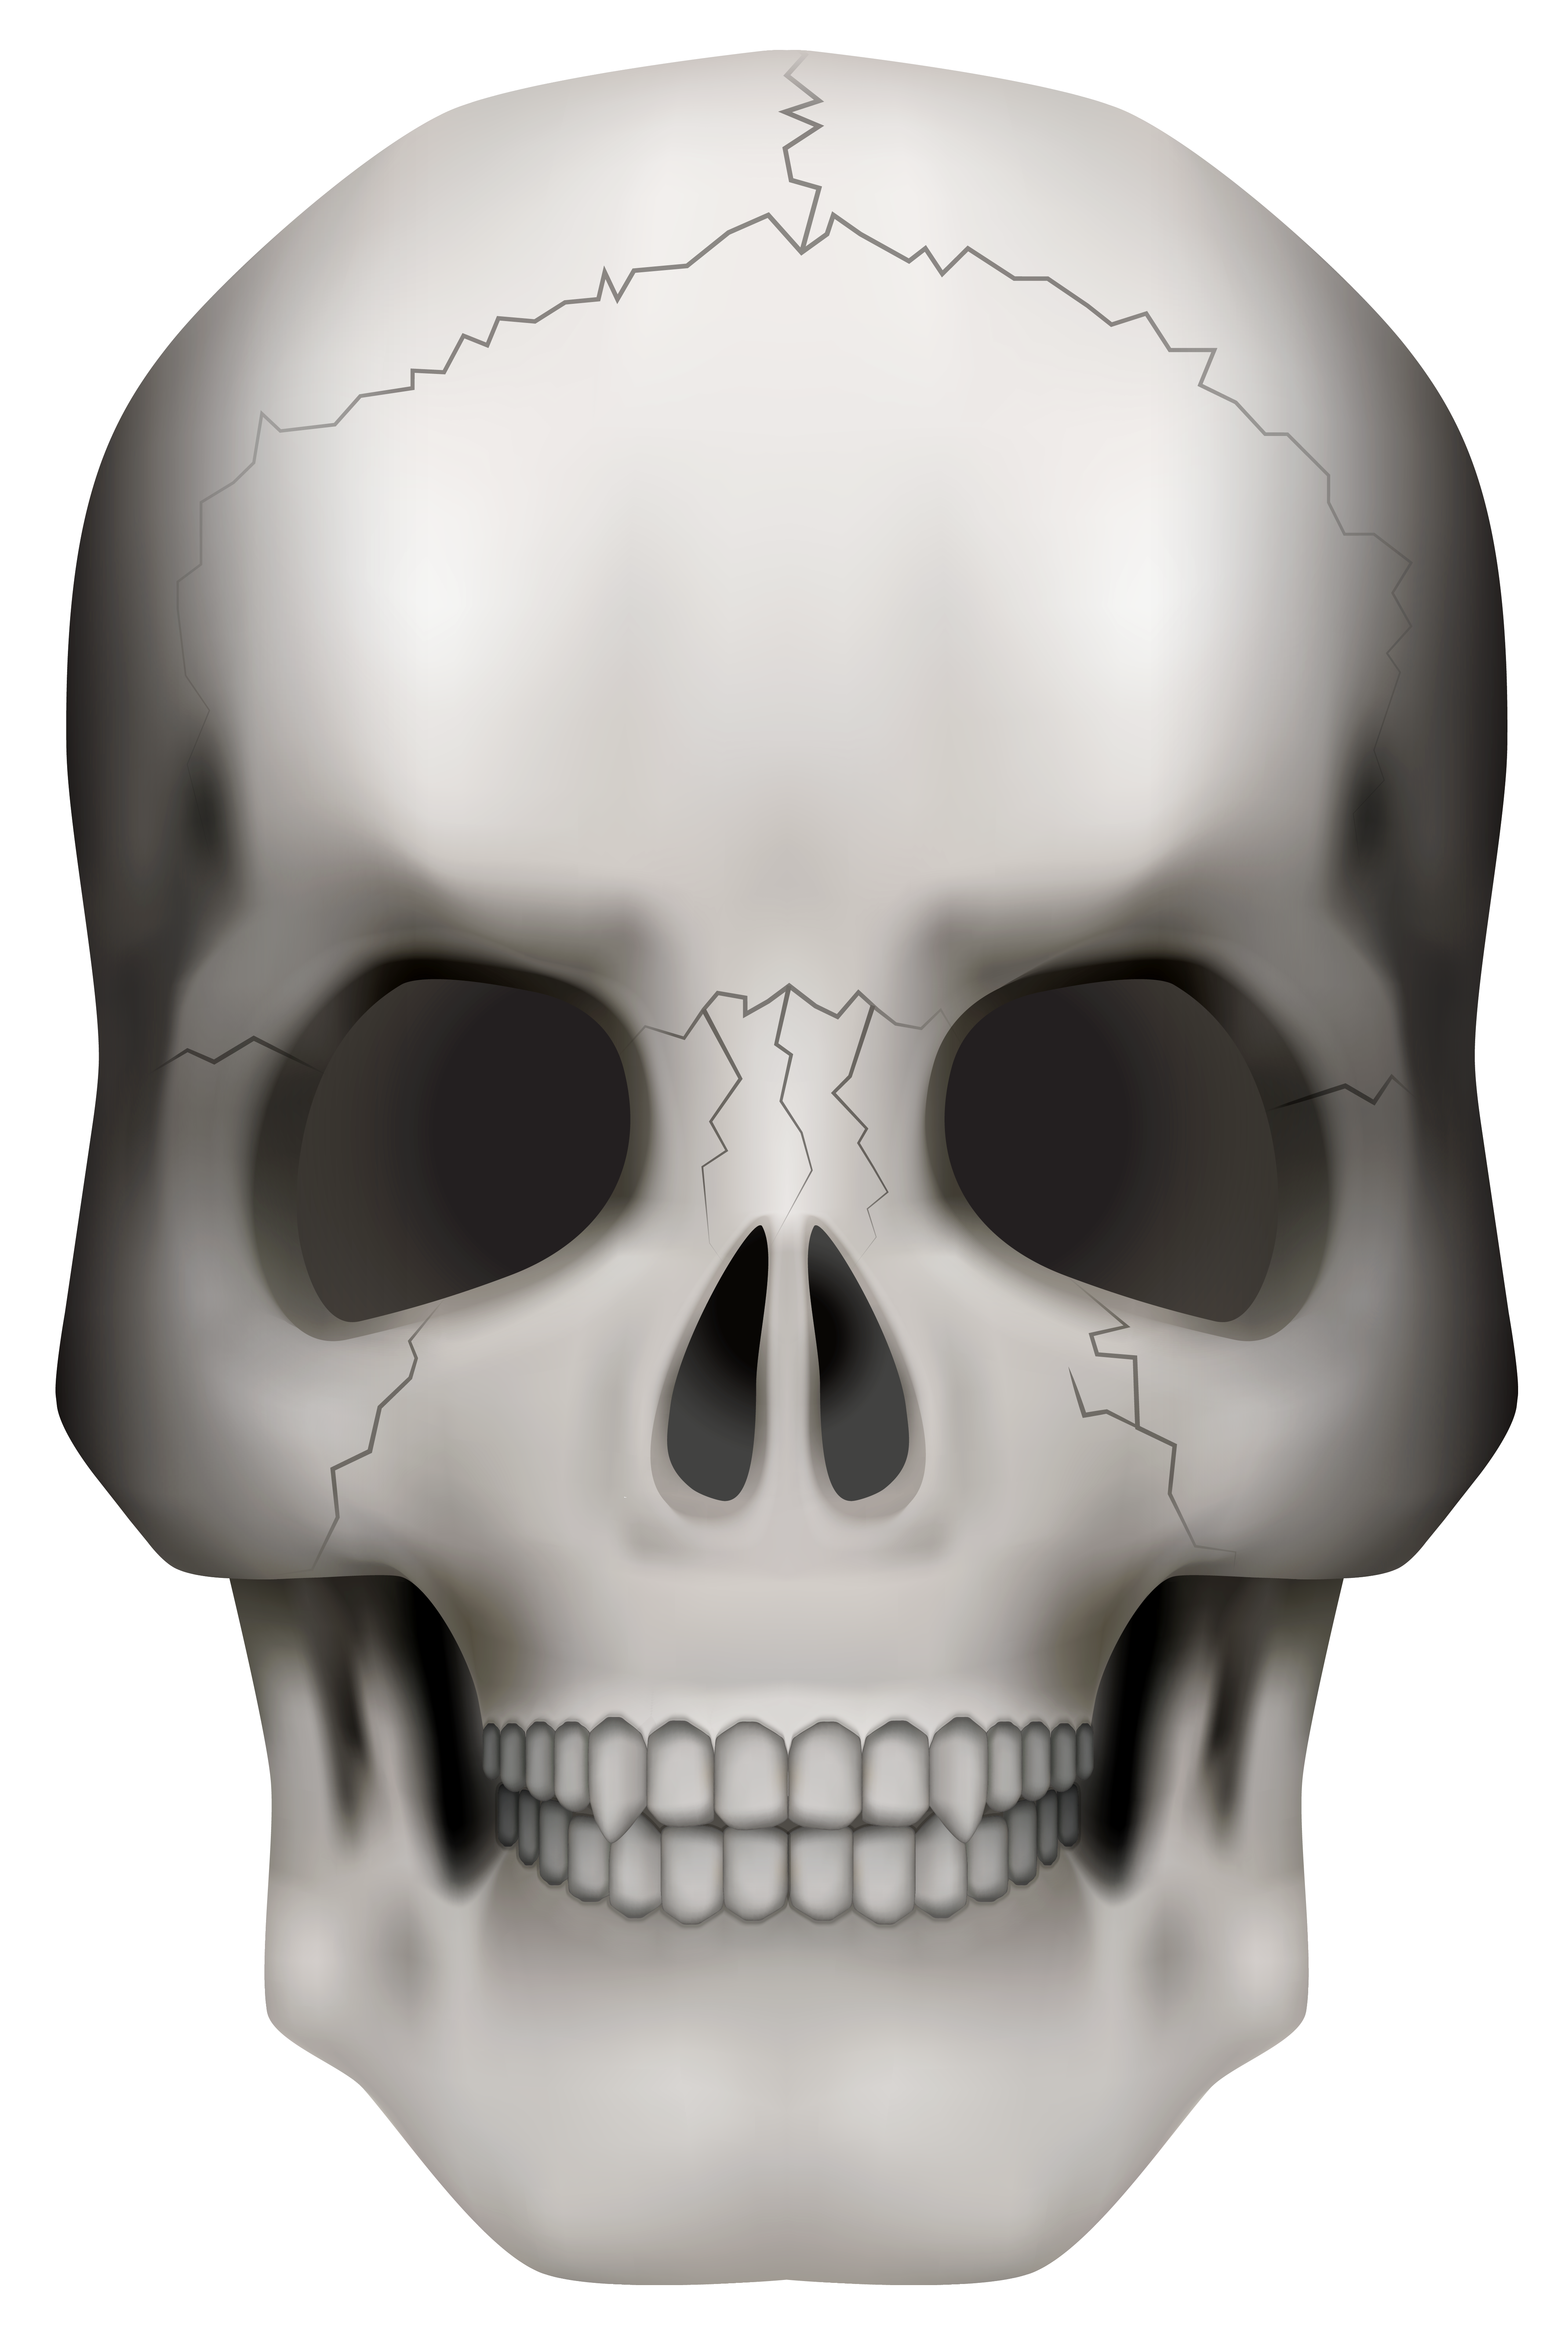 banner royalty free Png image gallery yopriceville. Skull clipart.